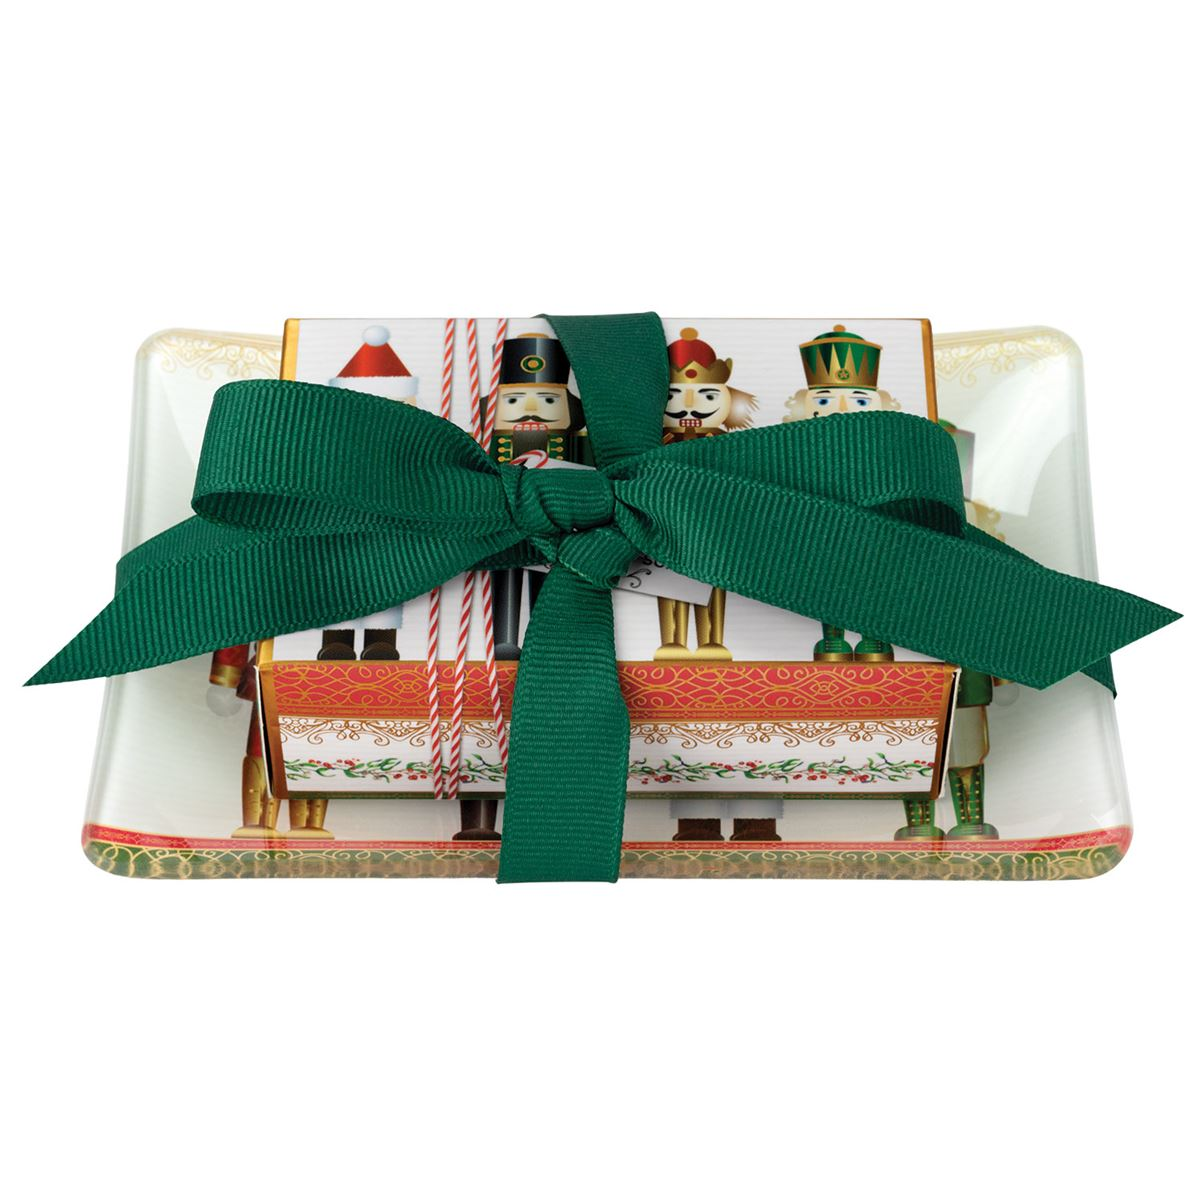 Michel Design Works Nutcracker Gift Soap Set | Putti Christmas Canada